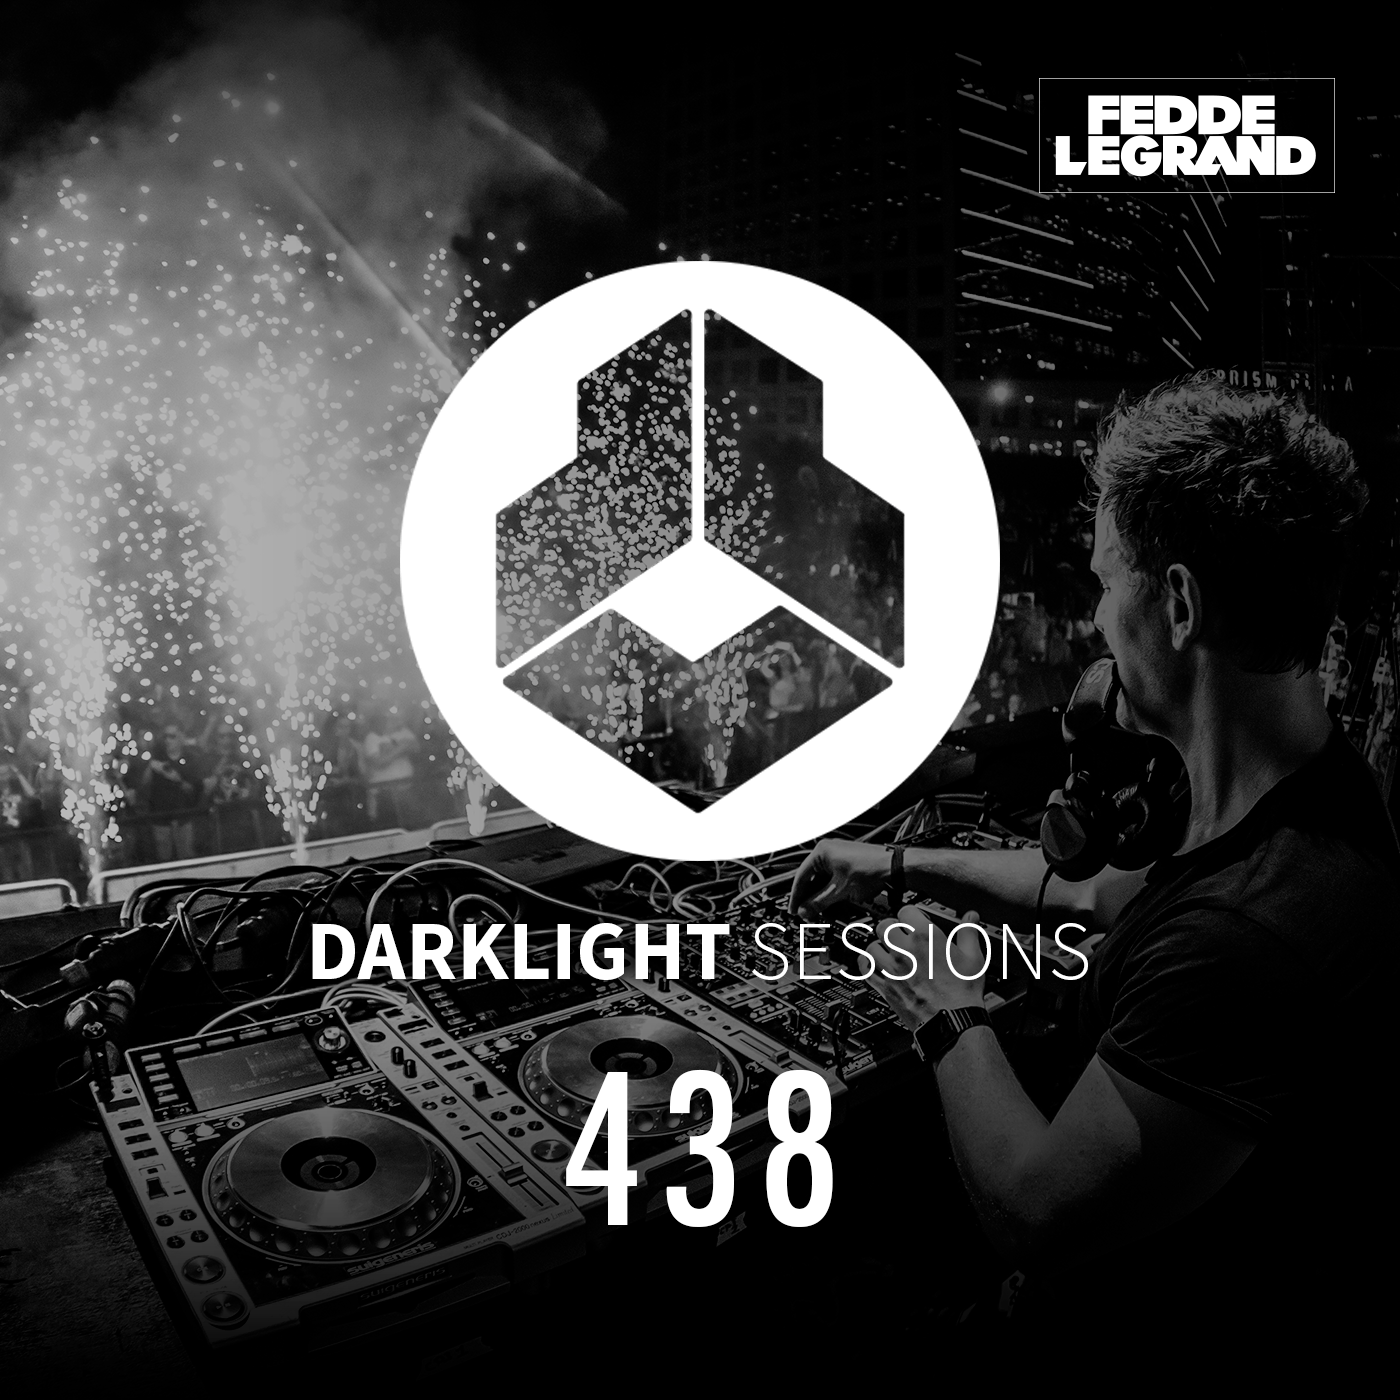 Darklight Sessions 438